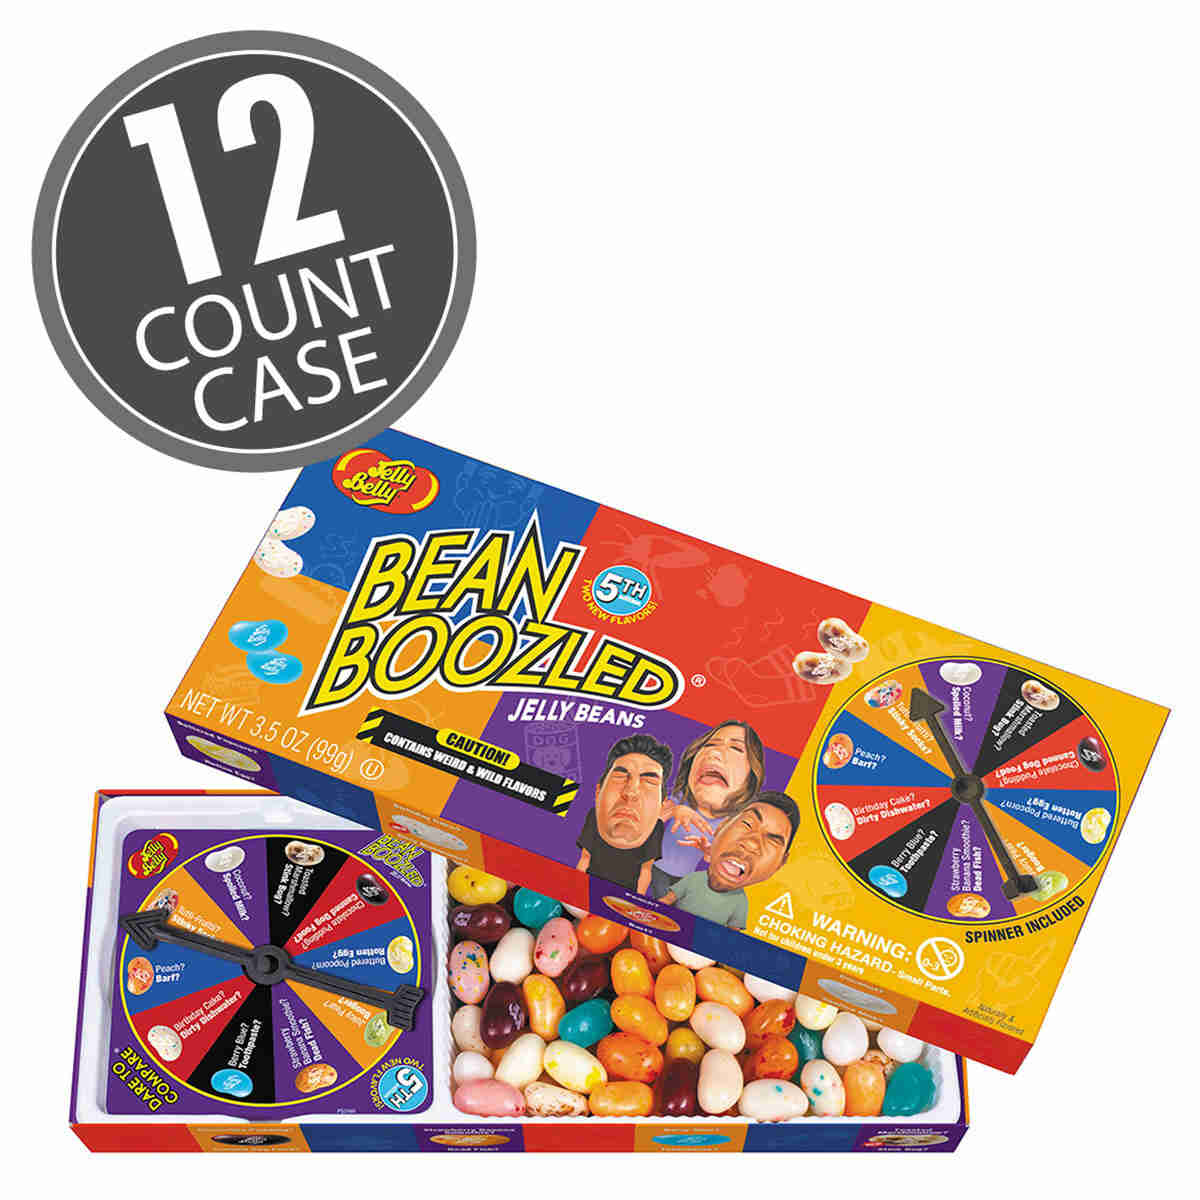 BeanBoozled Spinner Jelly Bean Gift Box (5th edition) 12-Count Case